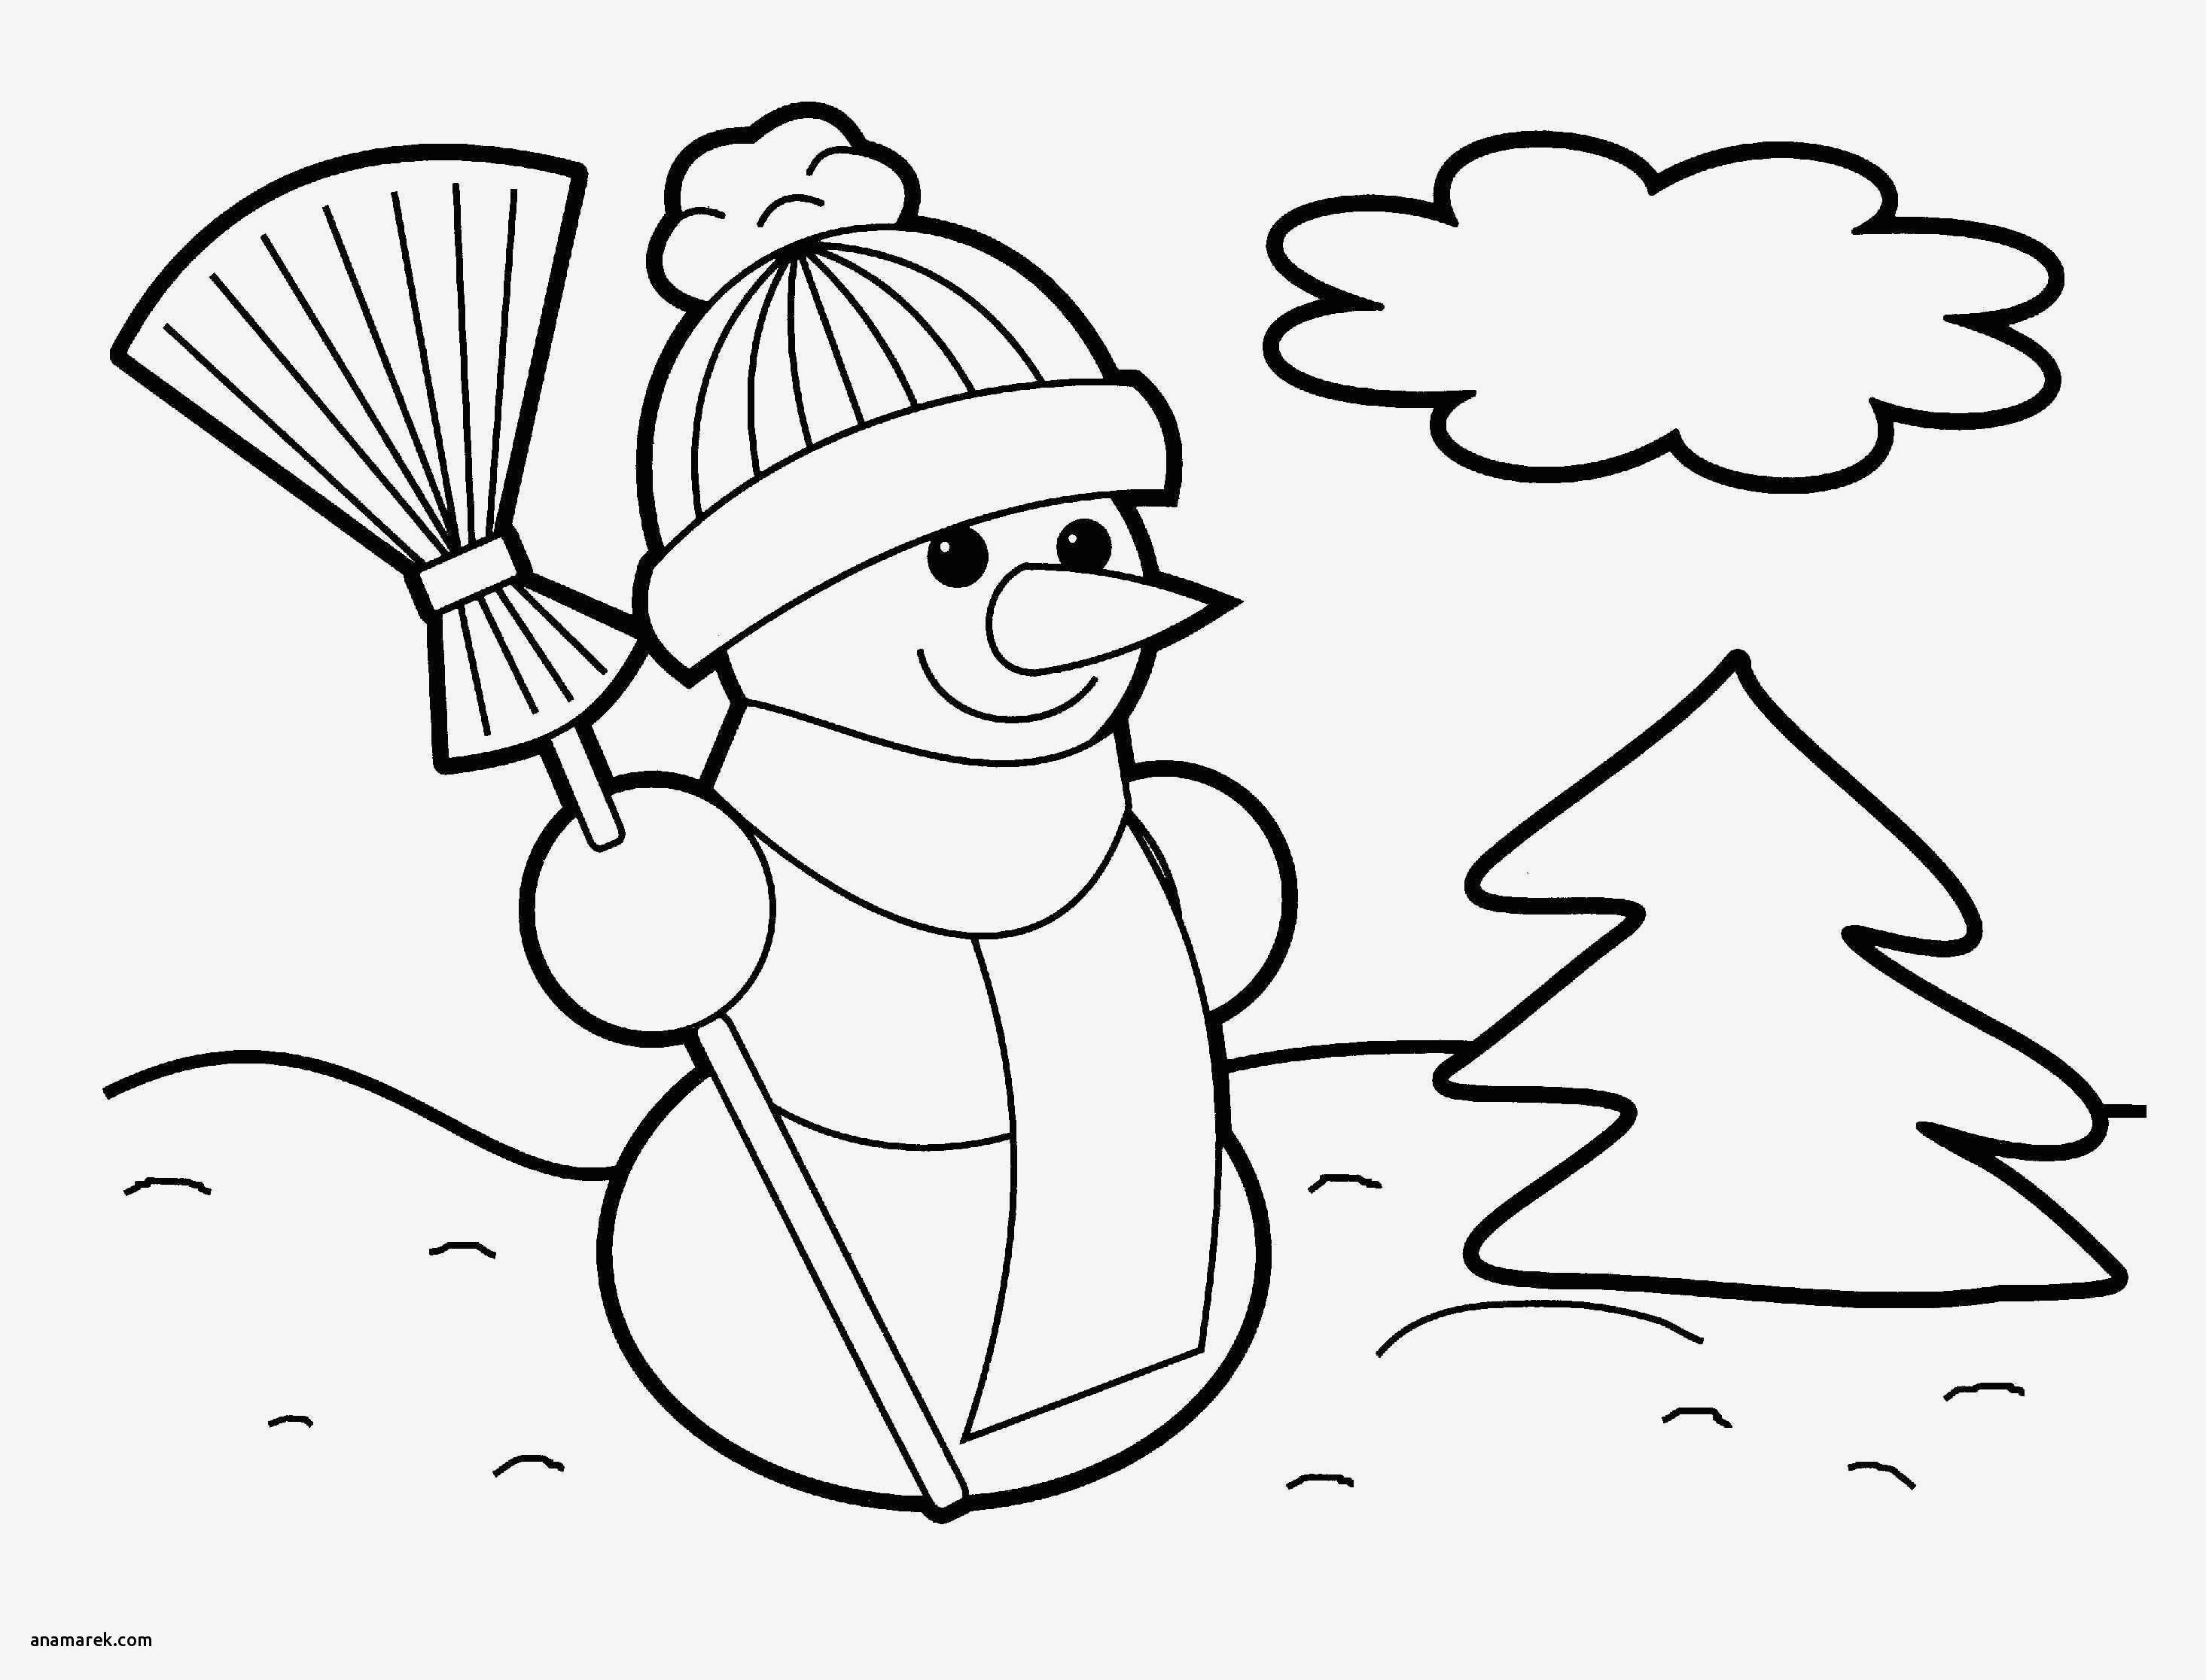 Free Coloring Pages Animals Elegant Country Girl Coloring Pages Inspirational Printable Christmas Coloring Pages Snowman Coloring Pages Princess Coloring Pages